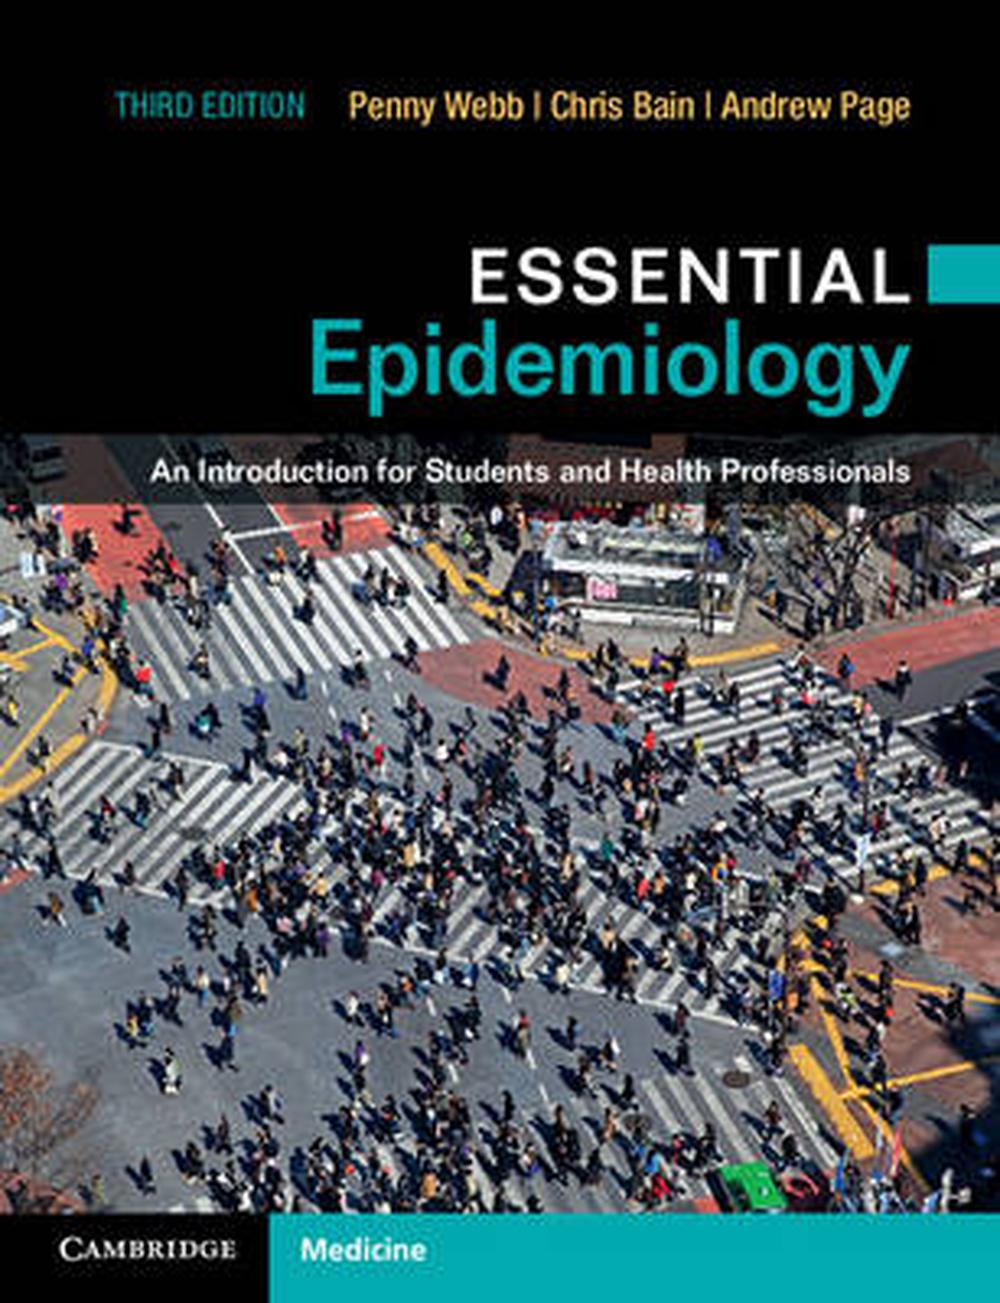 Essential Epidemiology, 3rd Edition